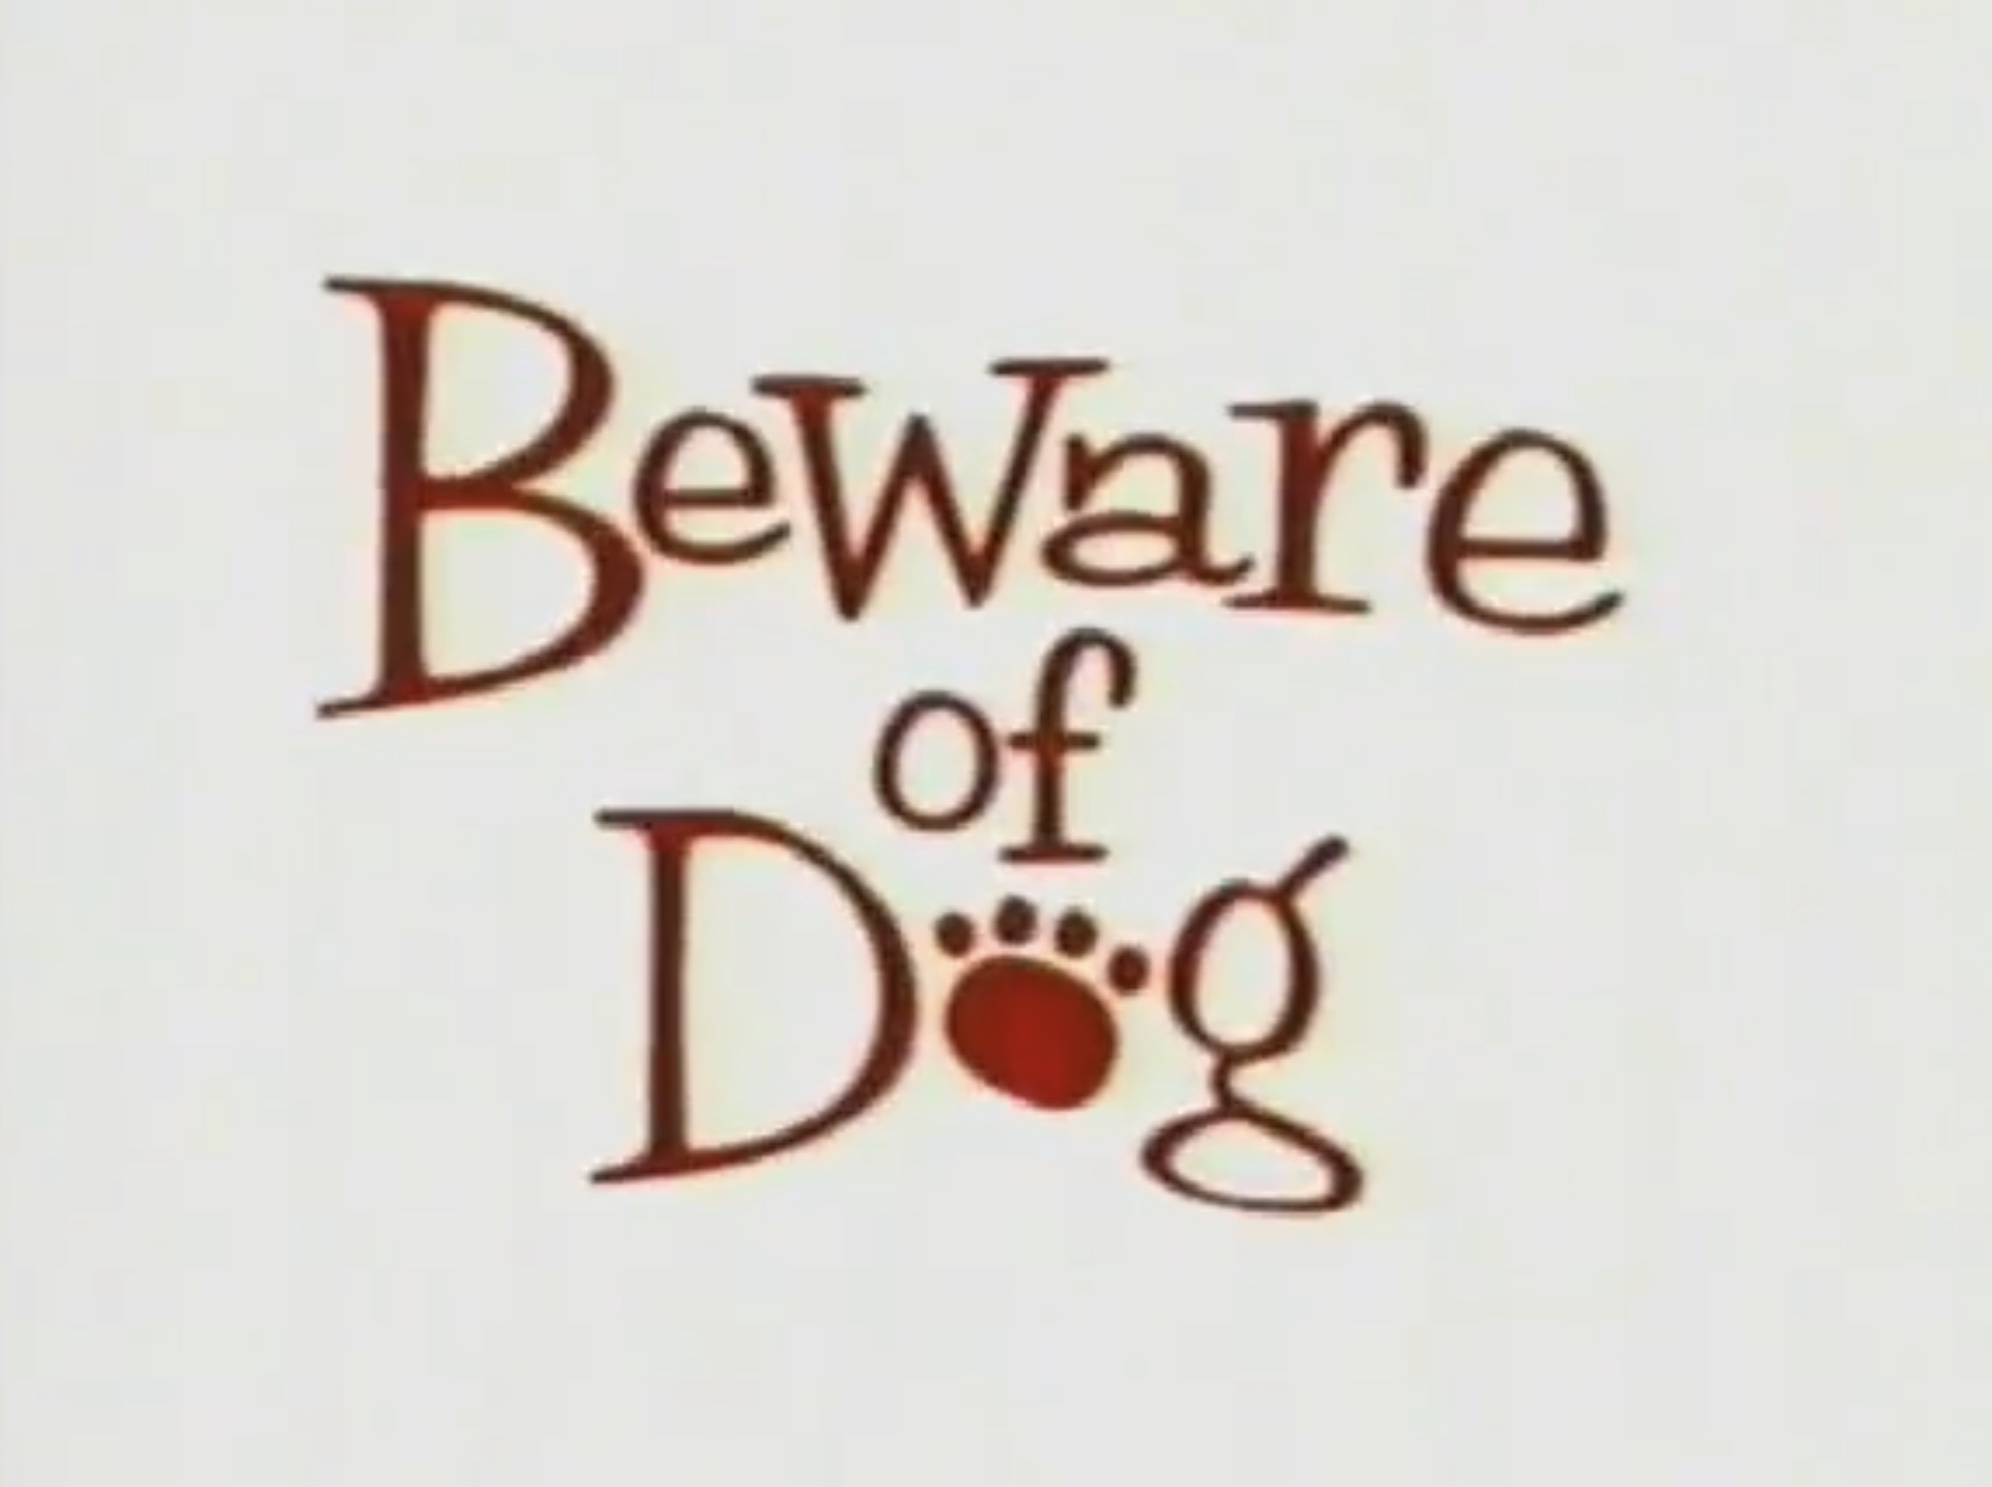 Beware of dog title.jpeg